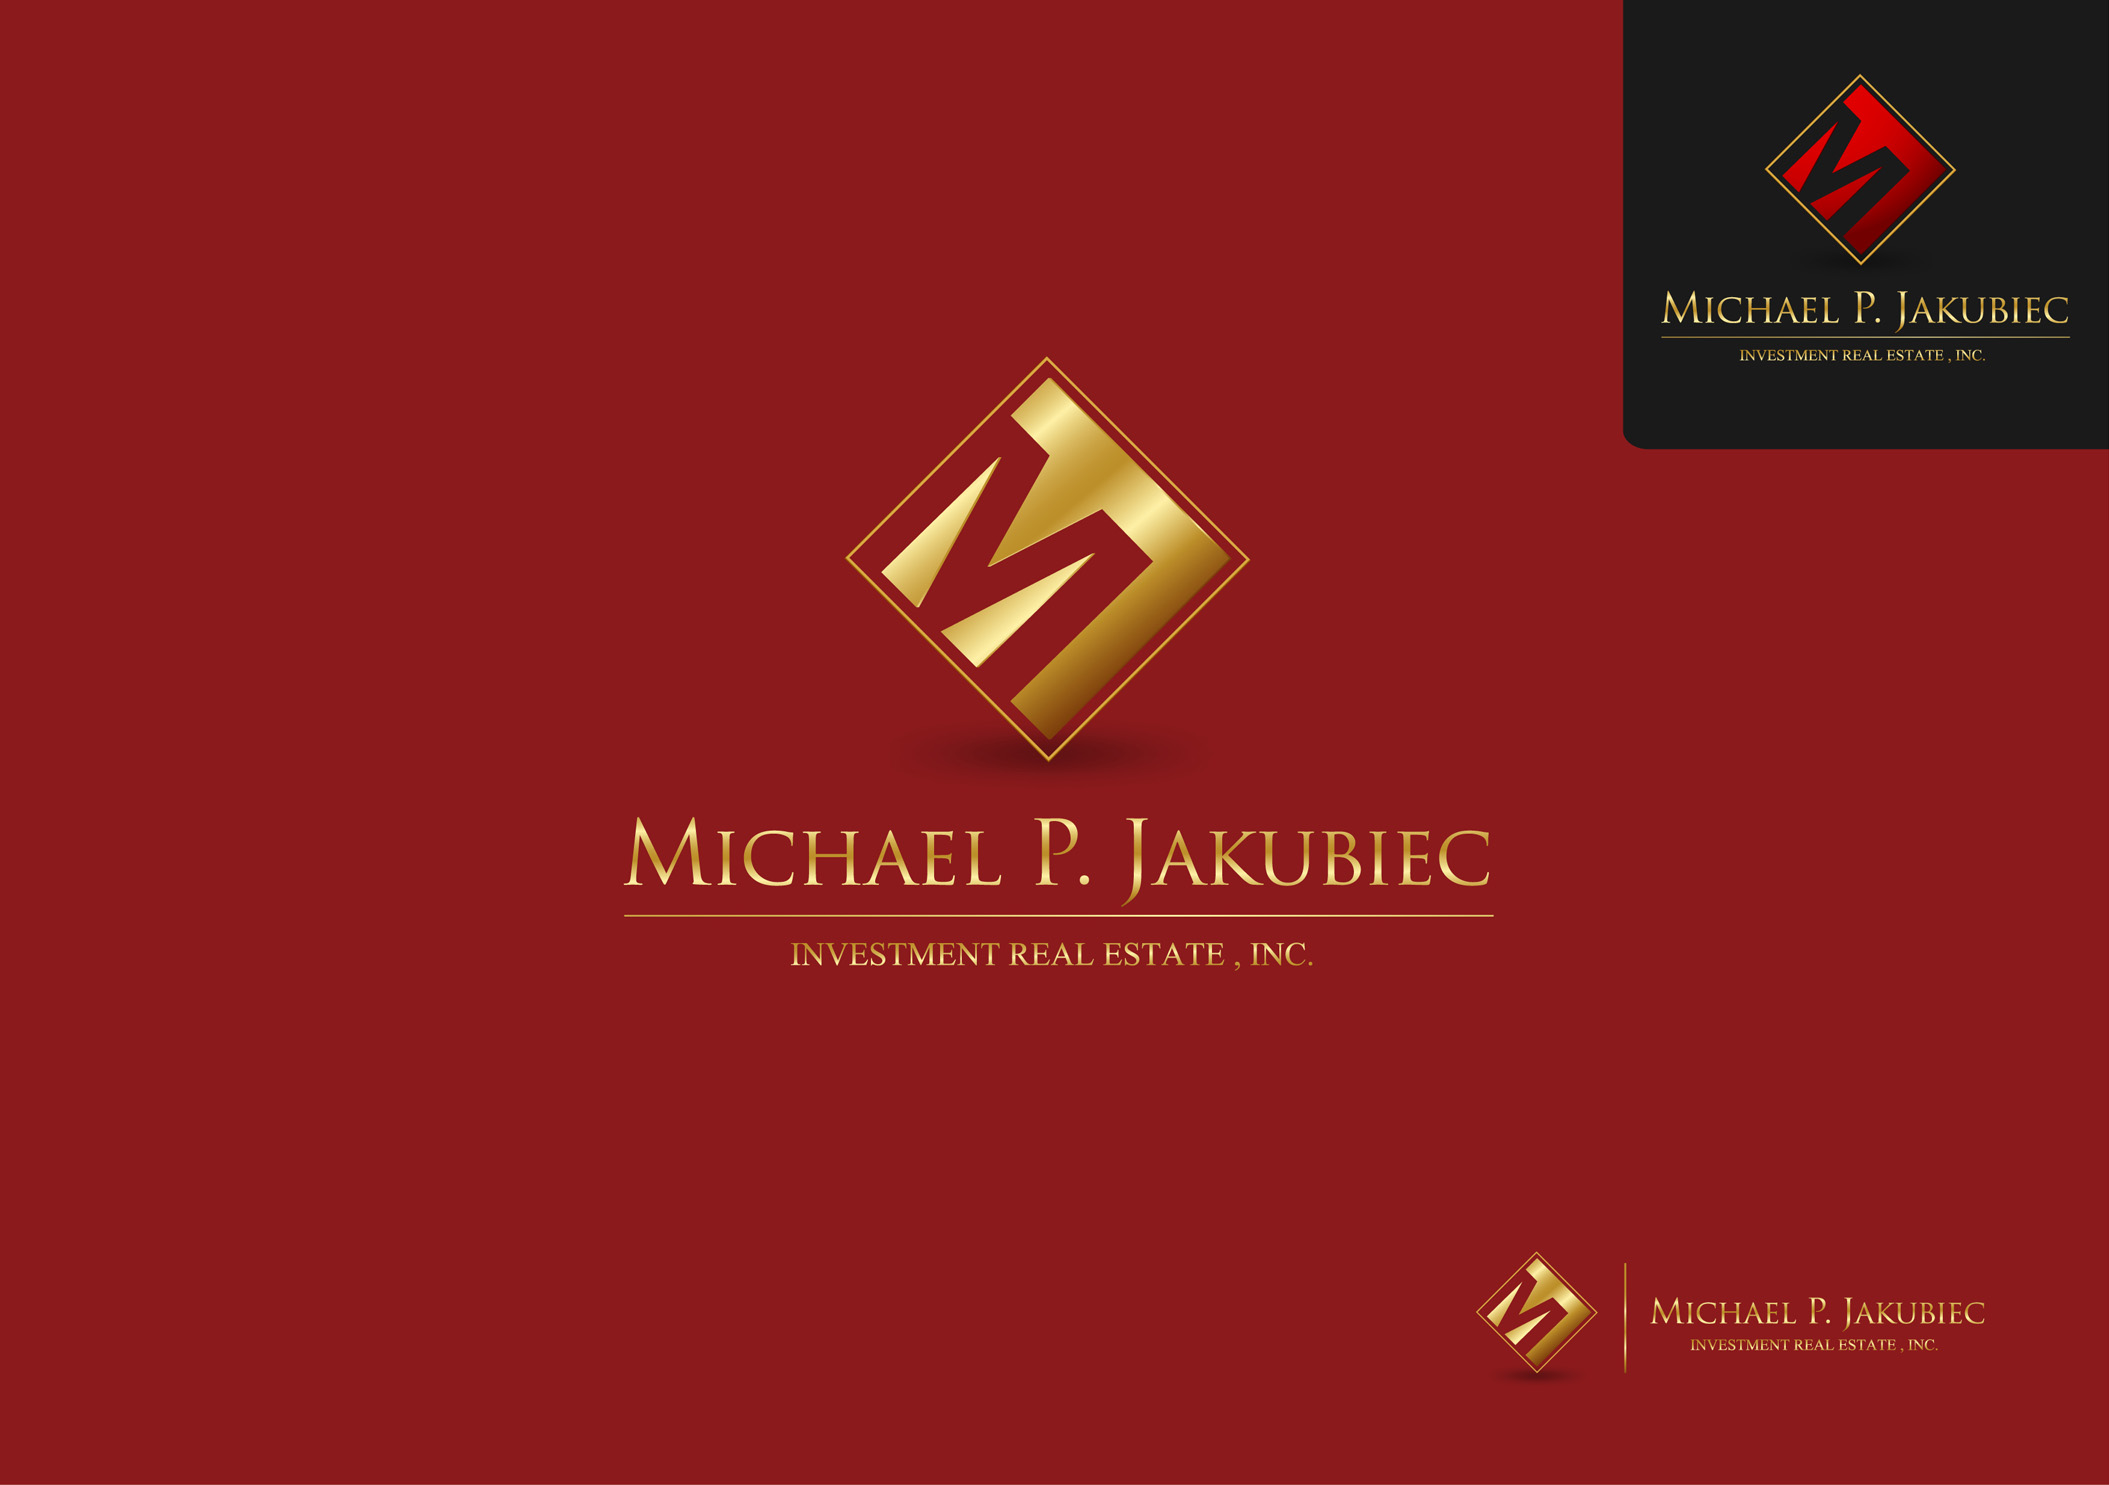 Logo Design by Mark Anthony Moreto Jordan - Entry No. 69 in the Logo Design Contest New Logo Design for Michael P. Jakubiec Investment Real Estate, Inc..